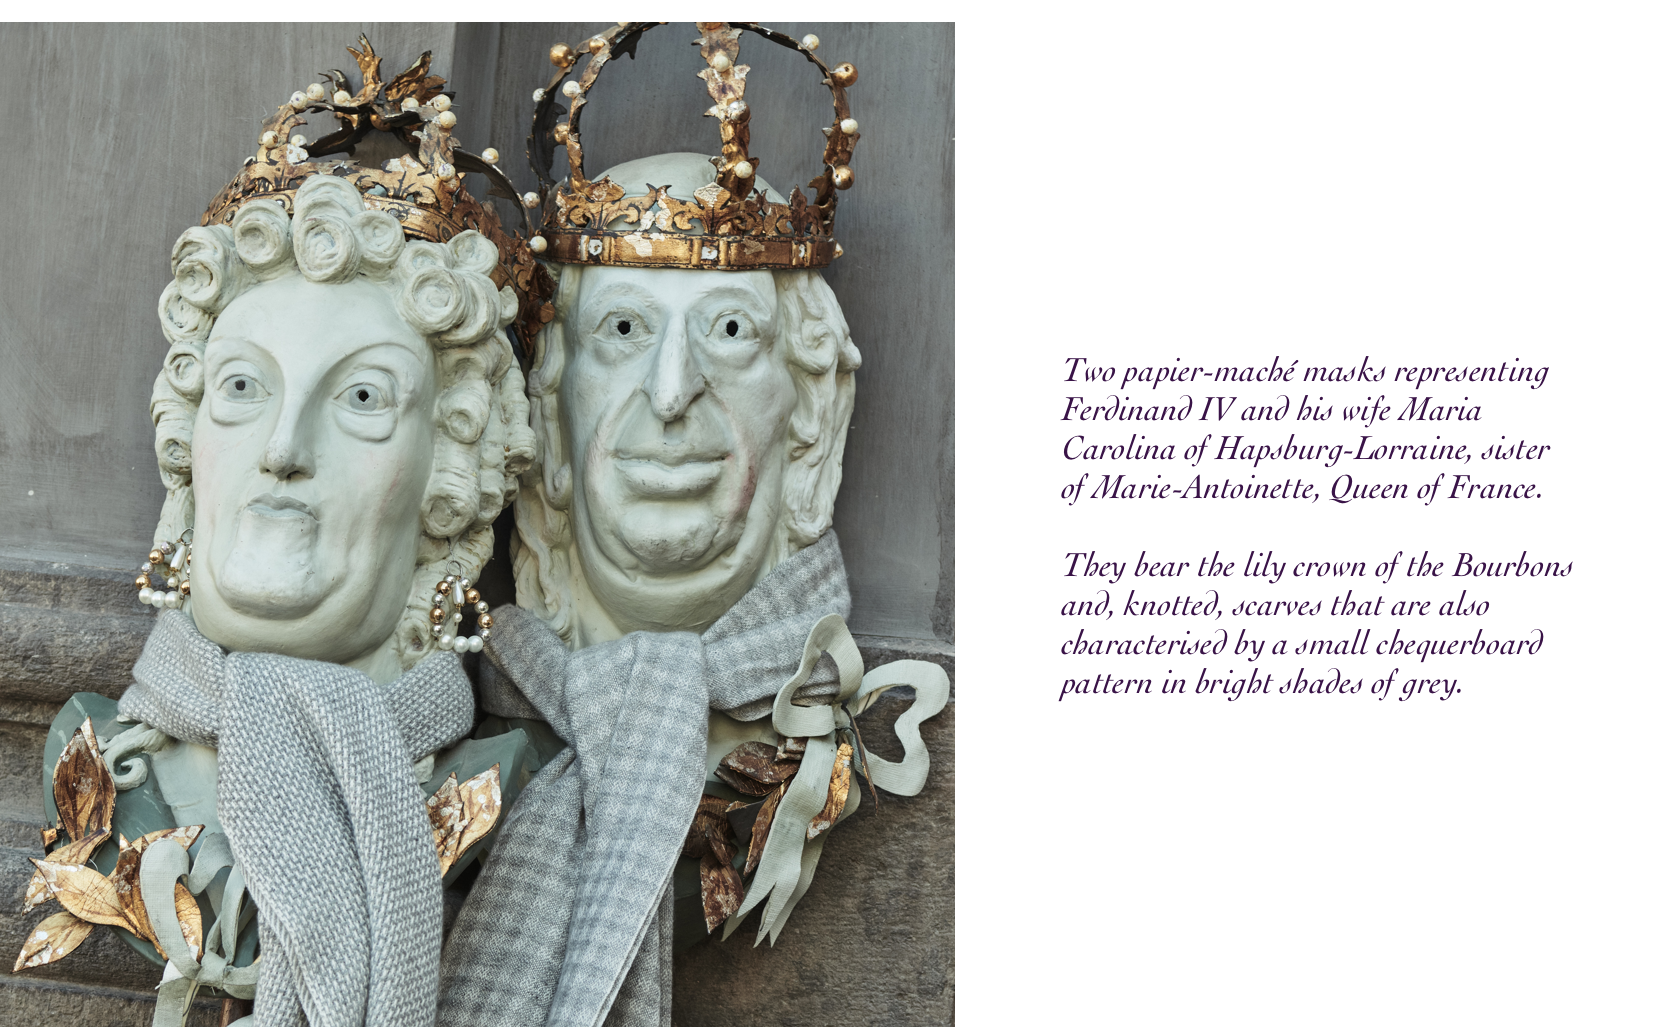 Two papier-maché masks representing Ferdinand IV and his wife Maria Carolina of Hapsburg-Lorraine, sister of Marie-Antoinette, Queen of France. They bear the lily crown of the Bourbons and, knotted, scarves that are also characterised by a small chequerboard pattern in bright shades of grey.